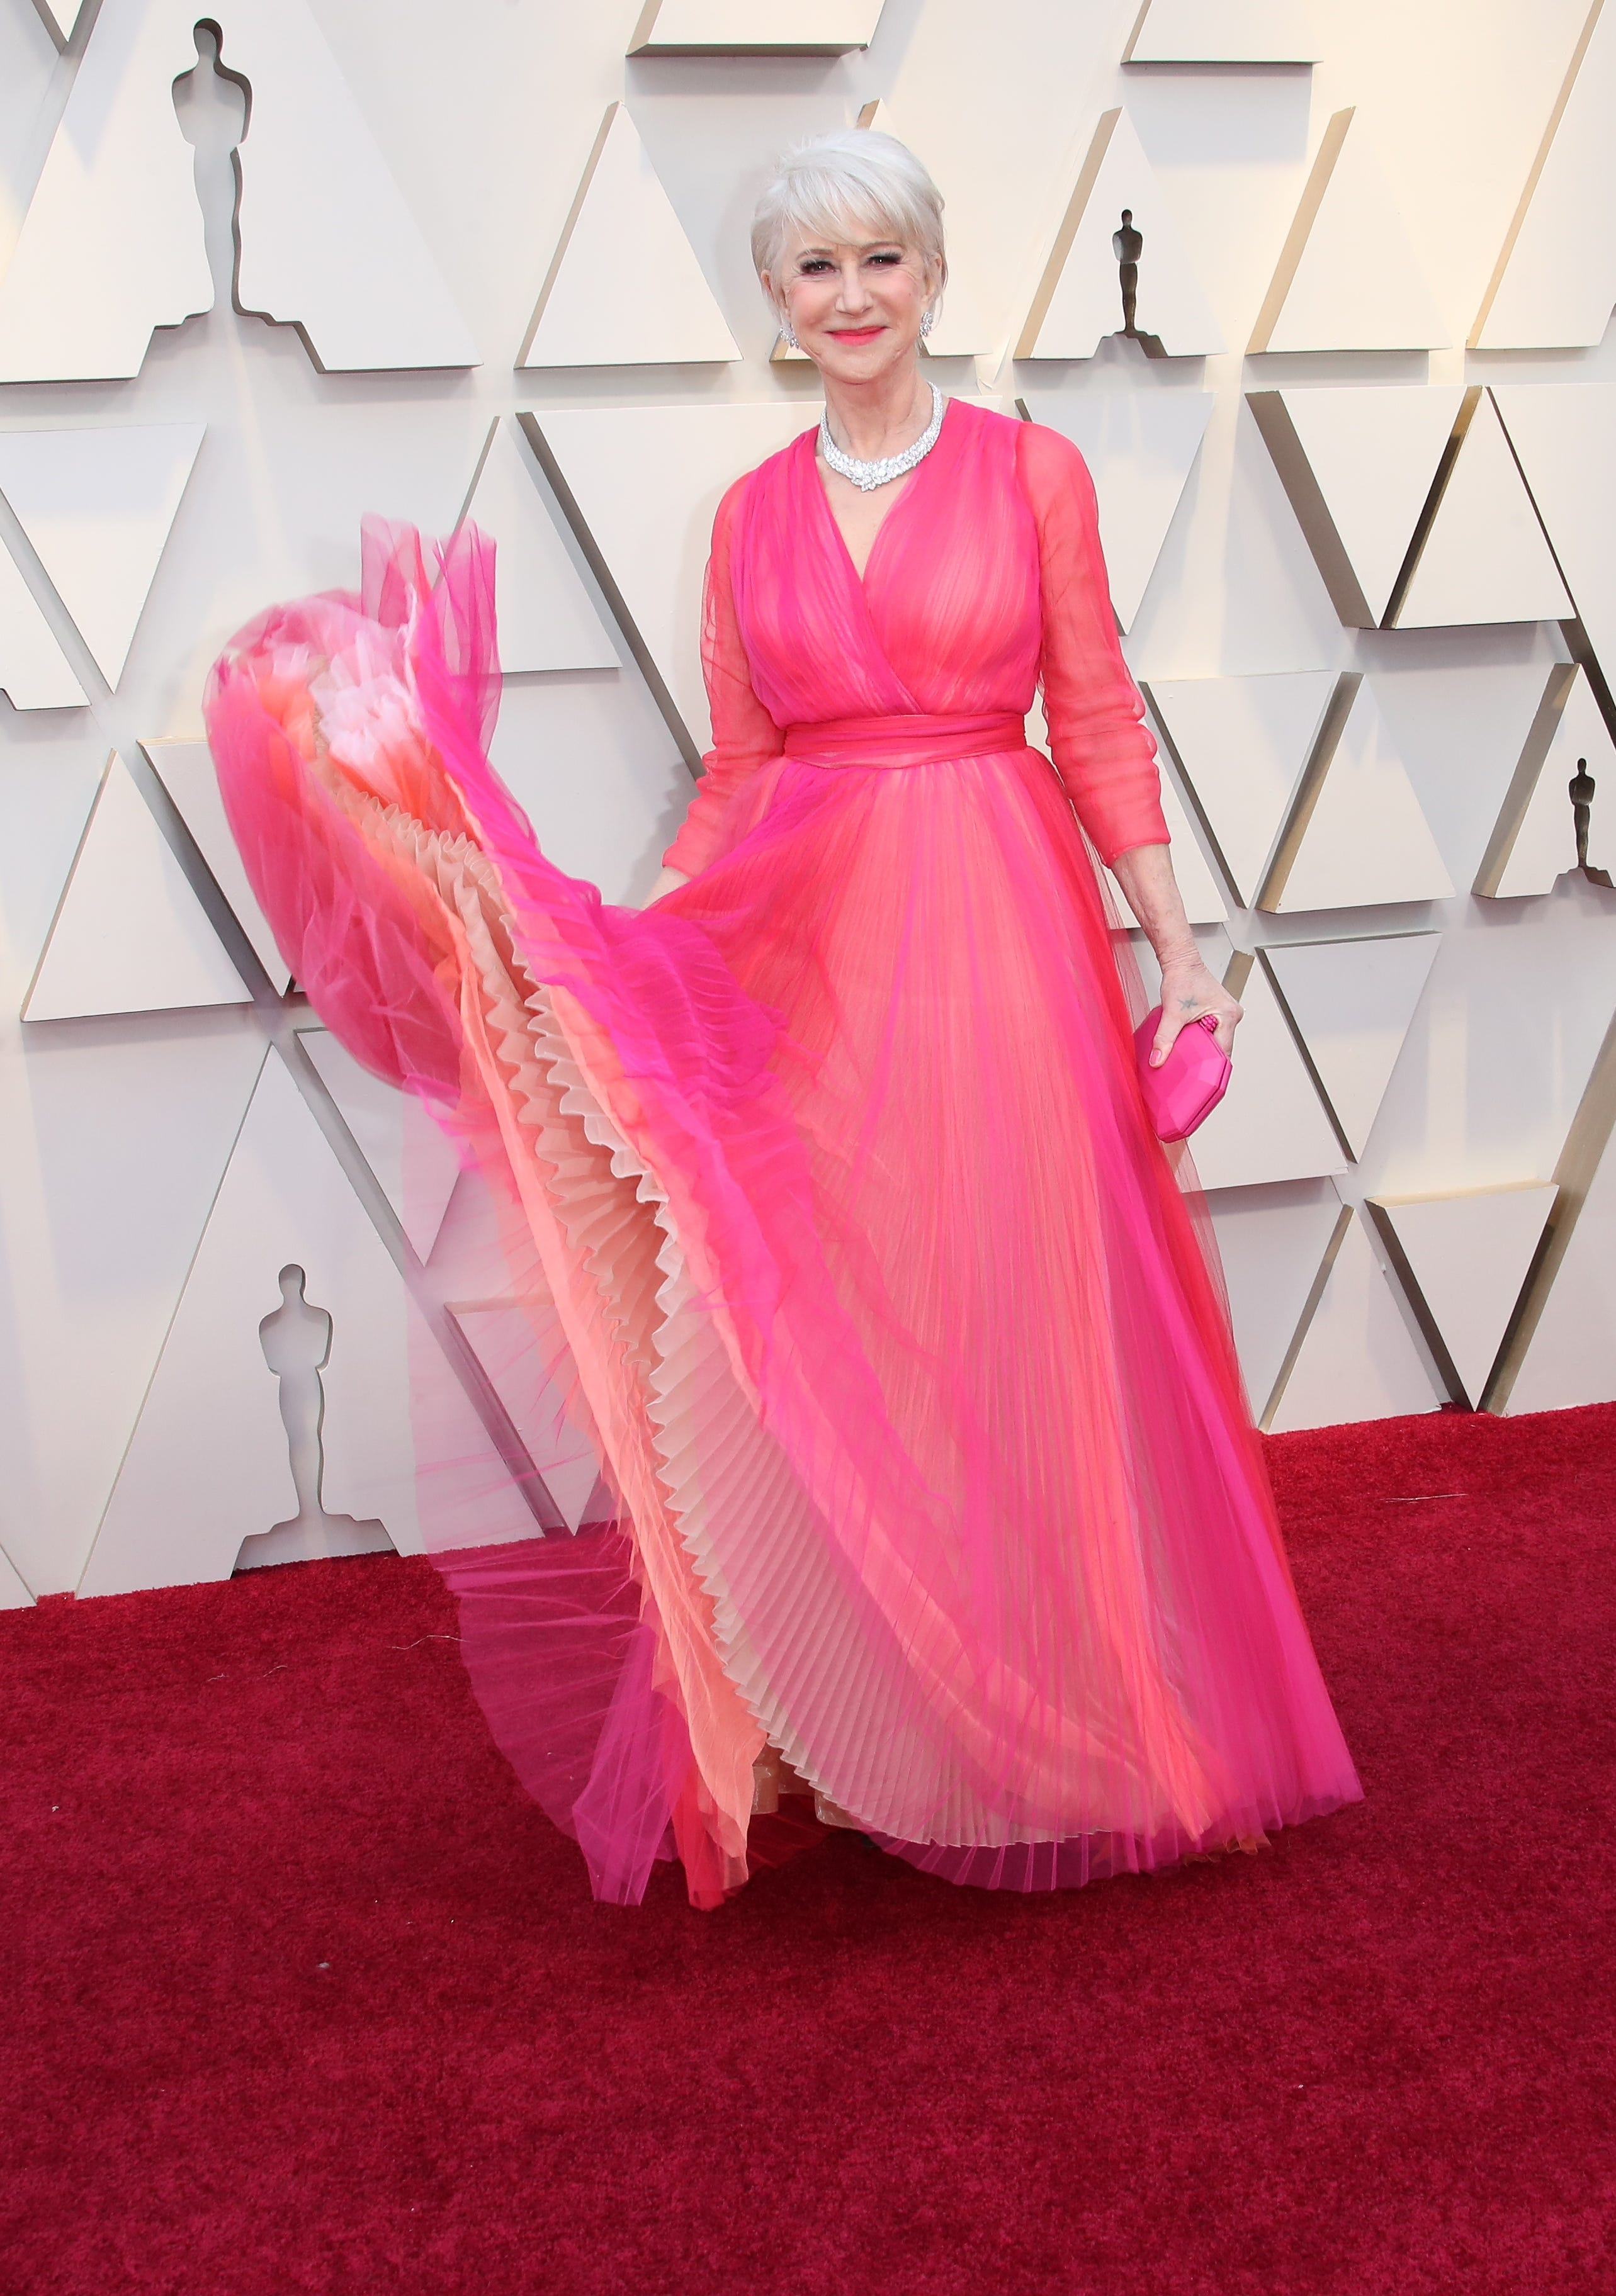 February 24, 2019; Los Angeles, CA, USA; Helen Mirren arrives at the 91st Academy Awards at the Dolby Theatre. Mandatory Credit: Dan MacMedan-USA TODAY NETWORK (Via OlyDrop)